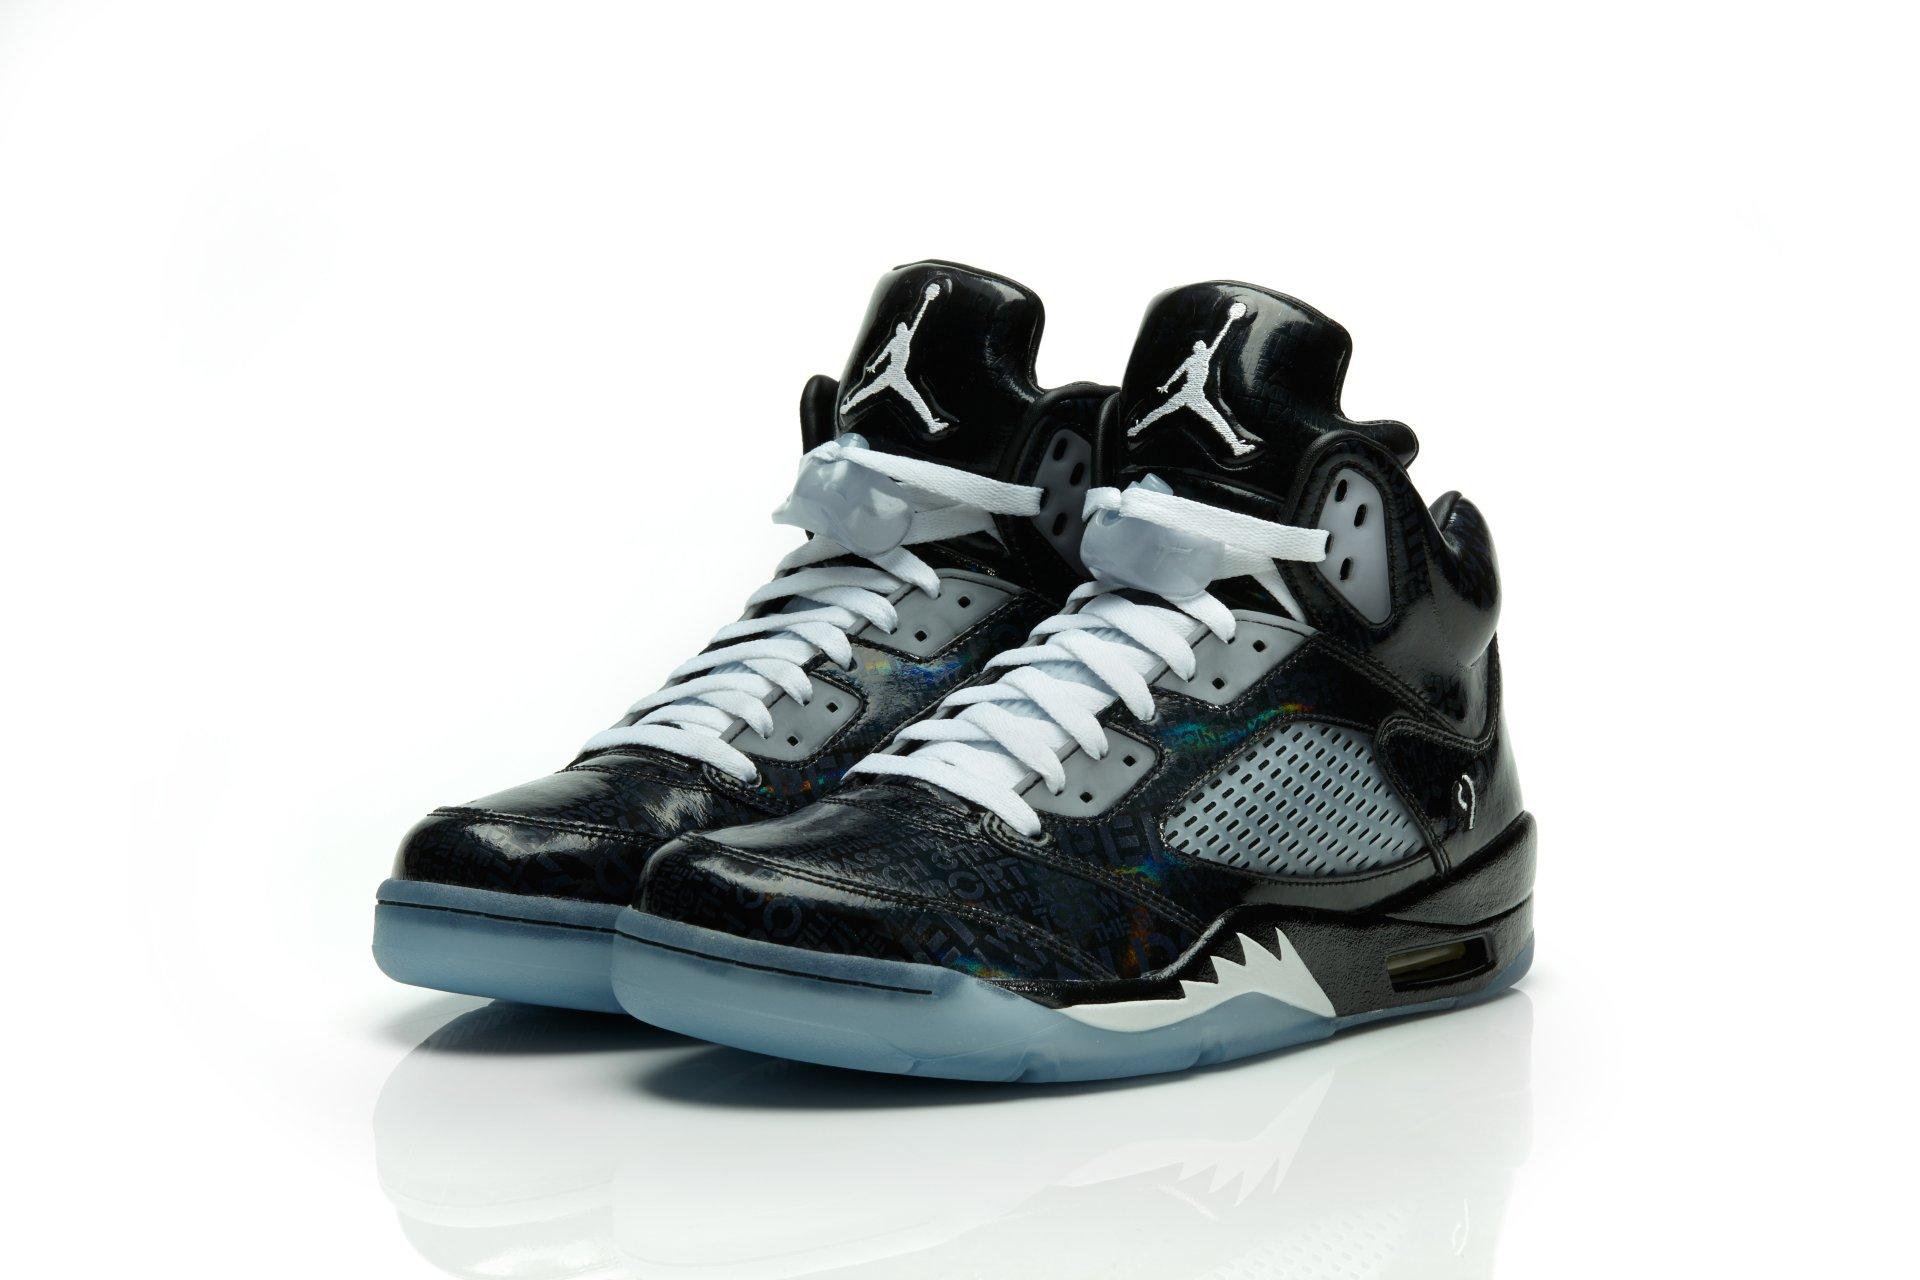 Air Jordan V 5 Retro Doernbecher Official Images Nike Space Jam Limited Edition To 2012 Freestyle Program Patient Isaac Arzate And His Family With The Release Of